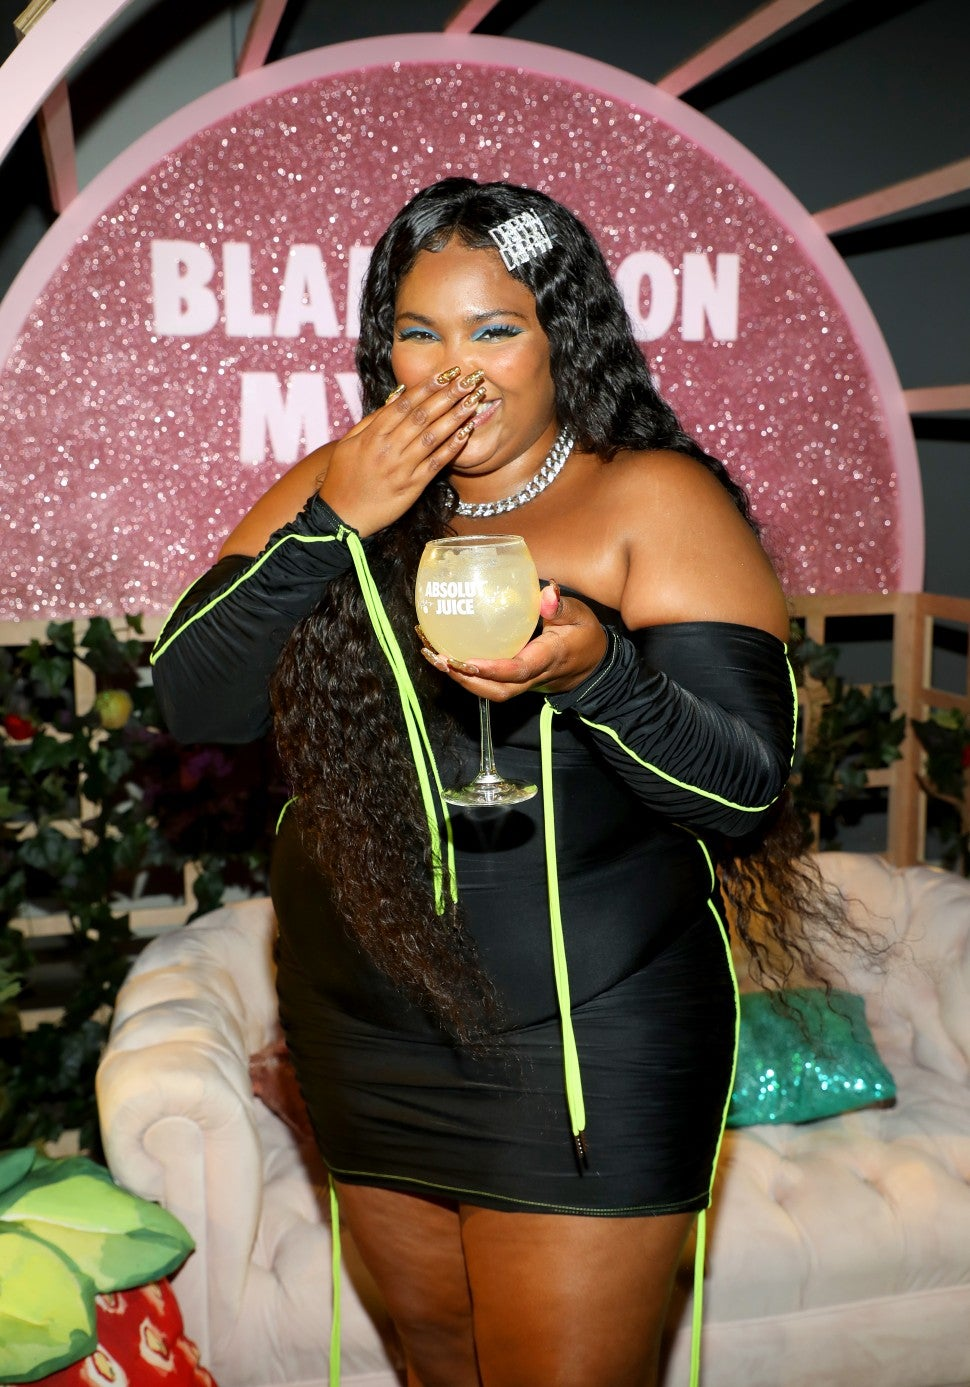 lizzo in miami with absolut juice